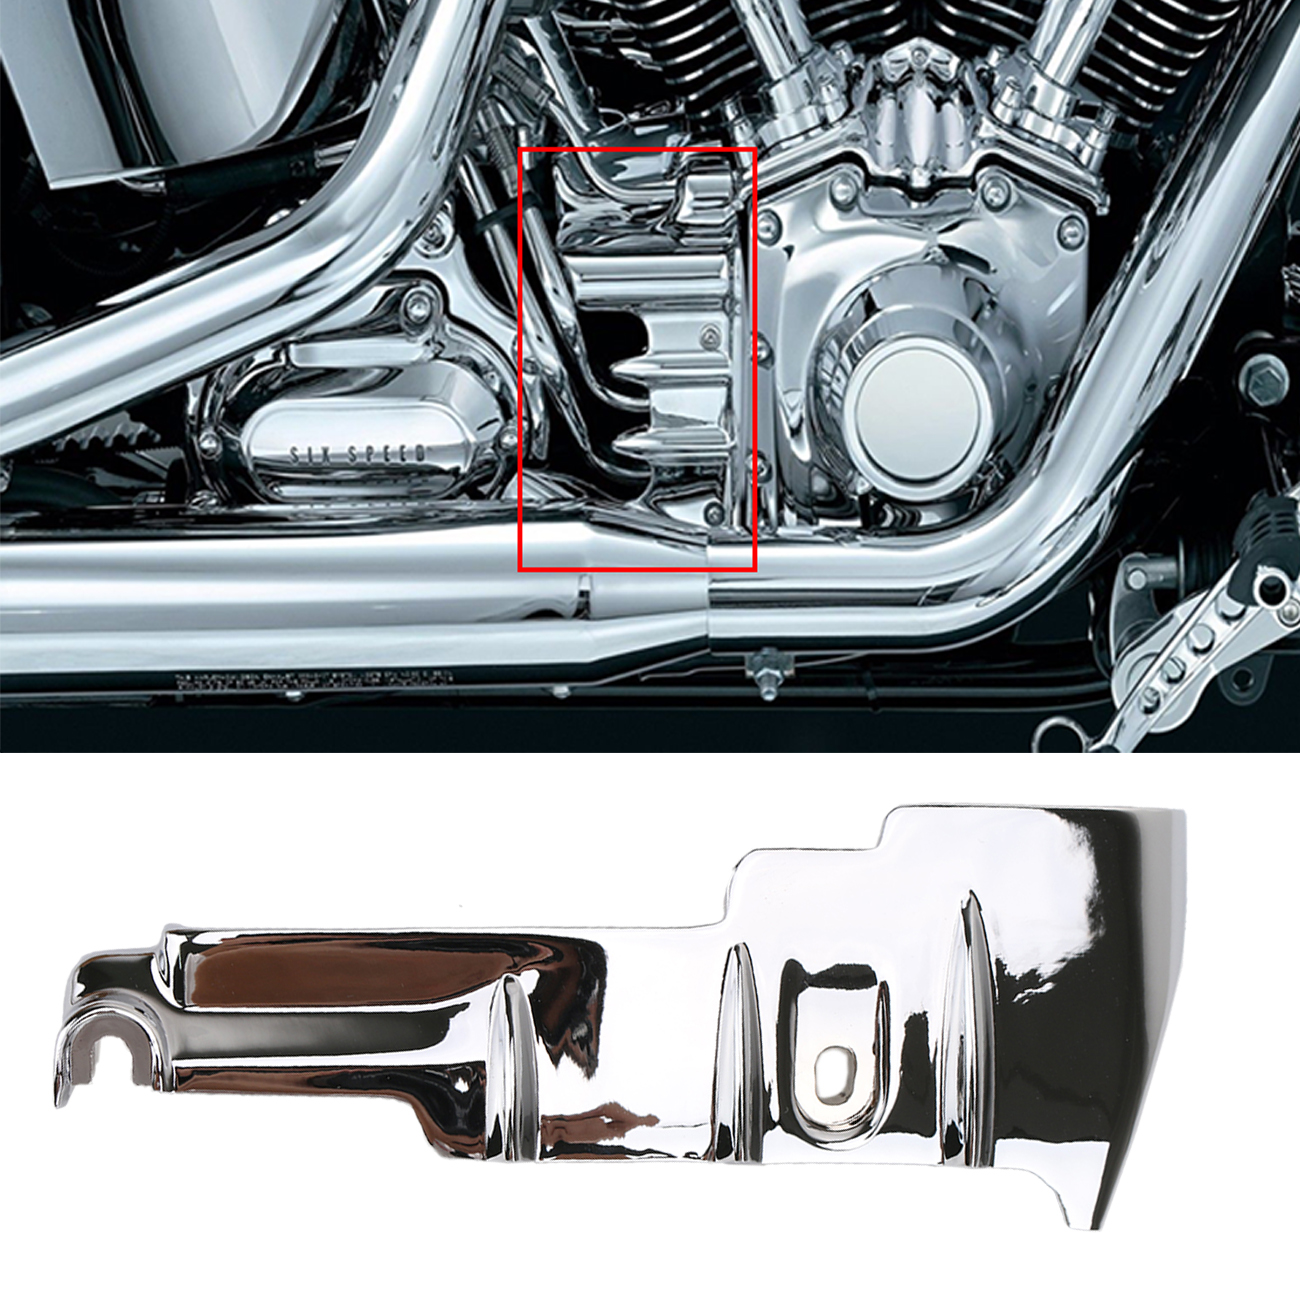 1Set Motorcycle Chrome Cylinder Base Side Cover For Harley Davidson Road King Street Glide Tri Glide 2010-2016 chrome custom motorcycle skeleton mirrors for harley davidson softail heritage classic